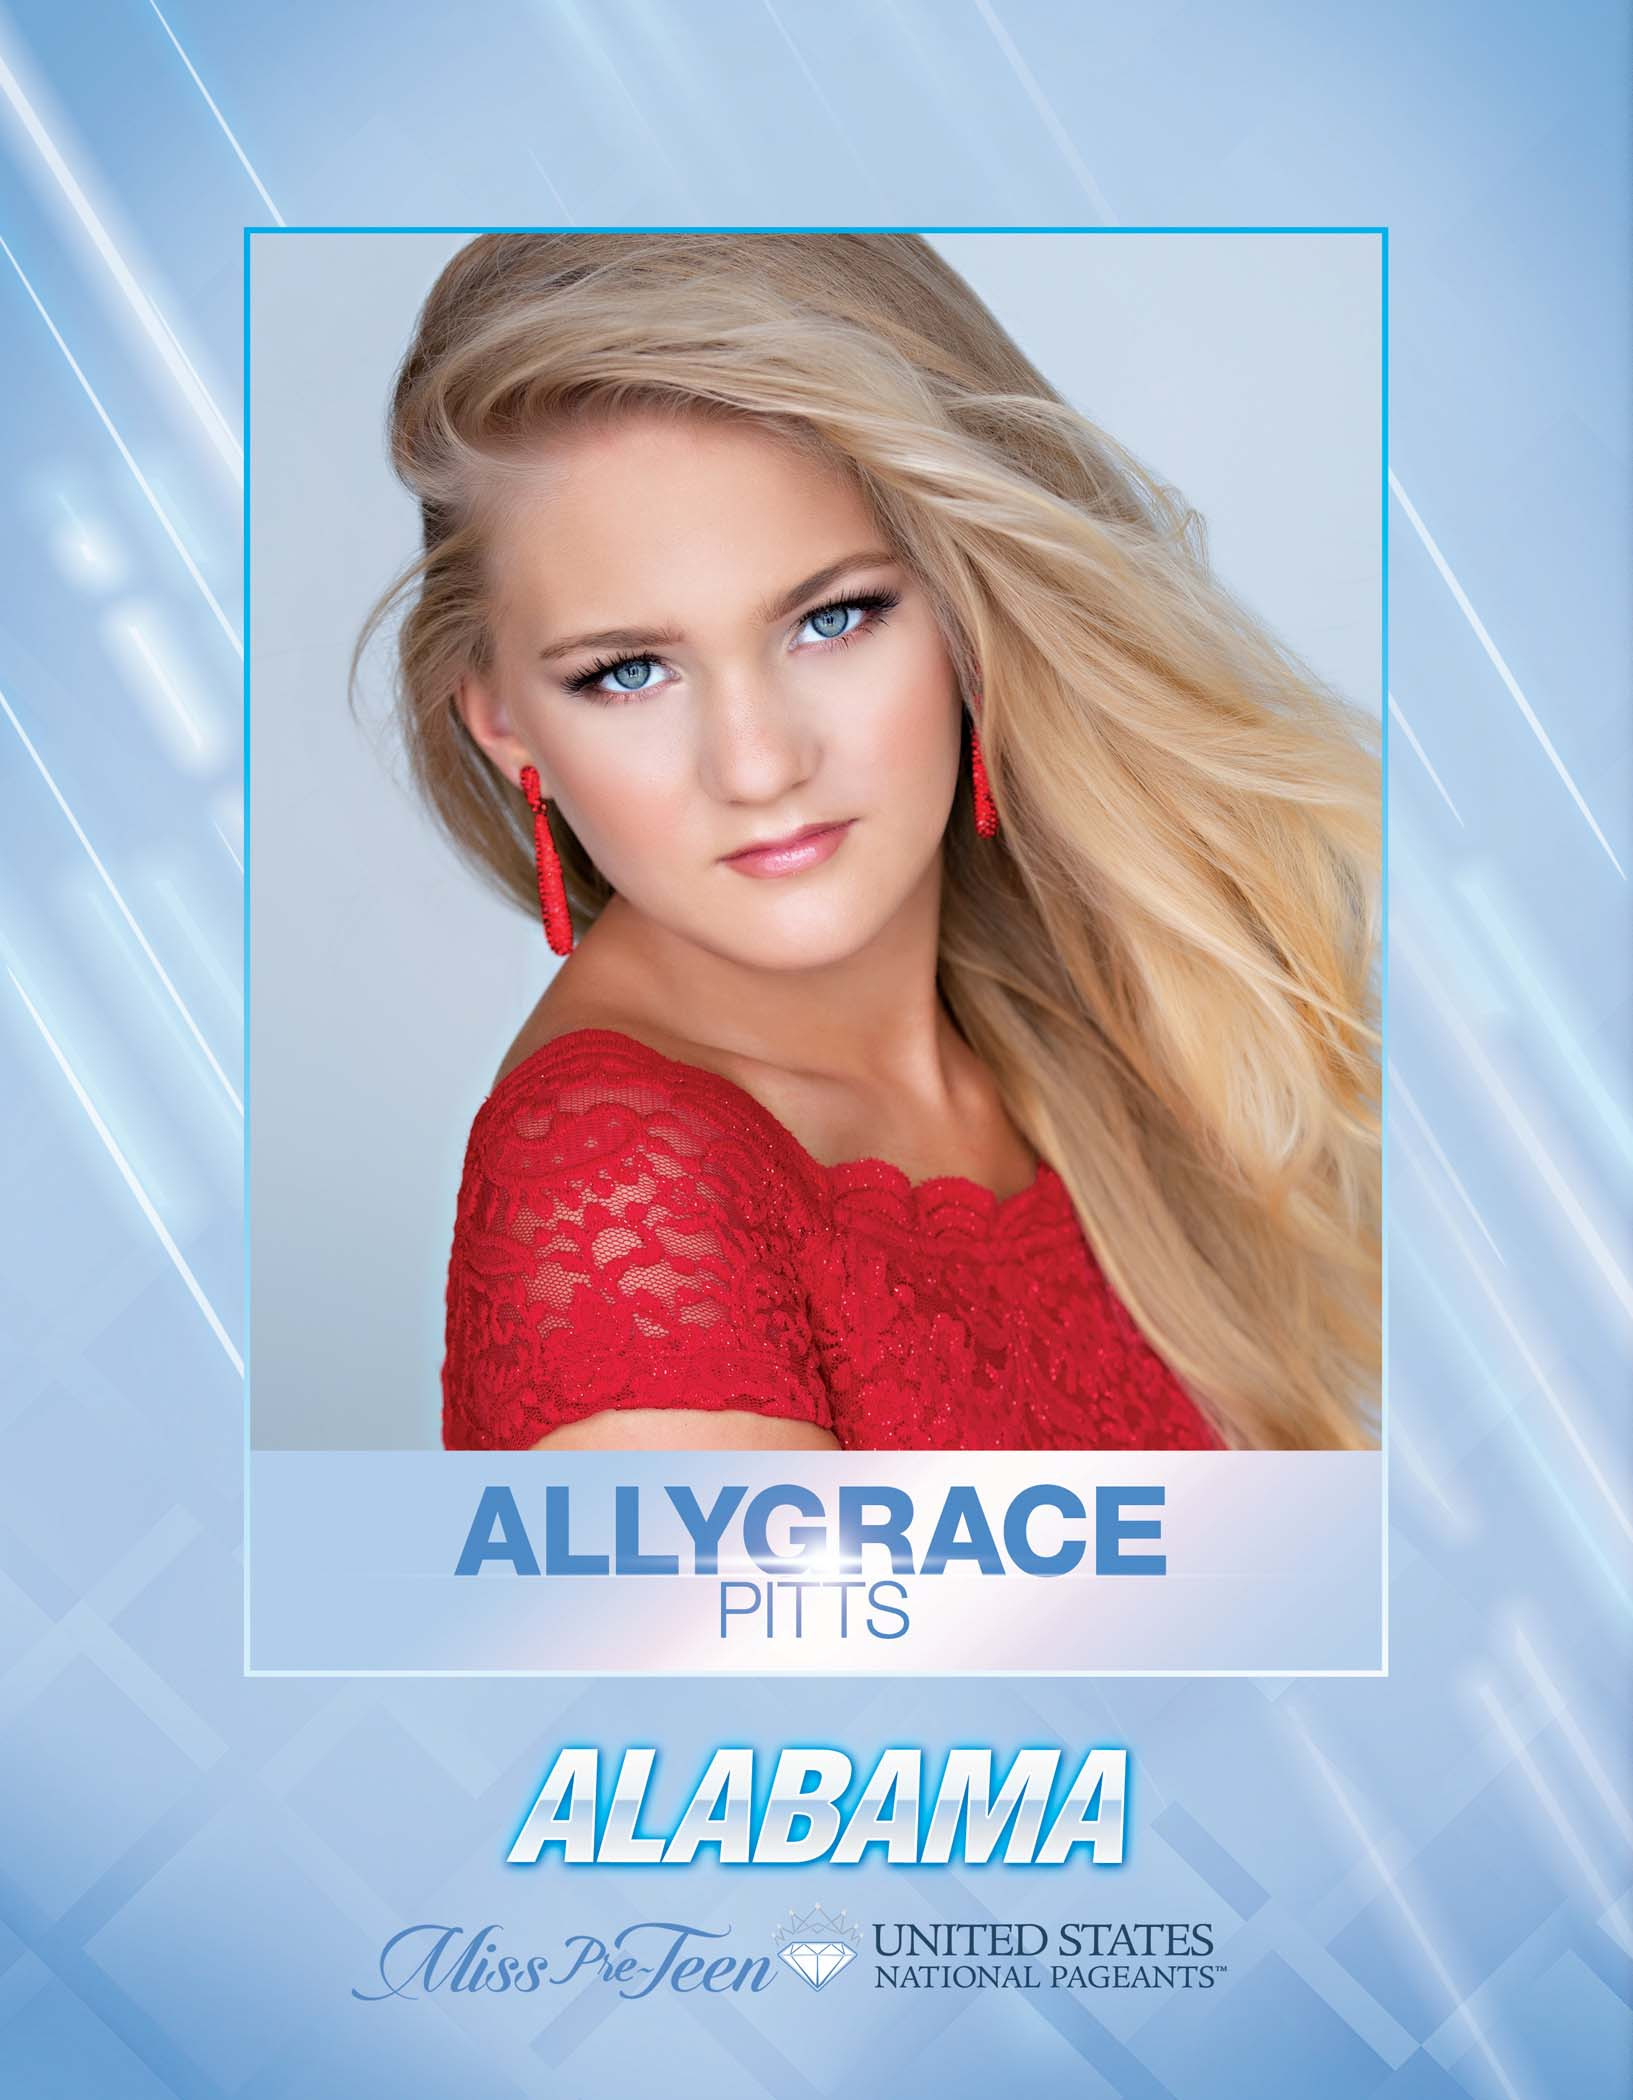 Allygrace Pitts Miss Pre-Teen Alabama United States - 2021